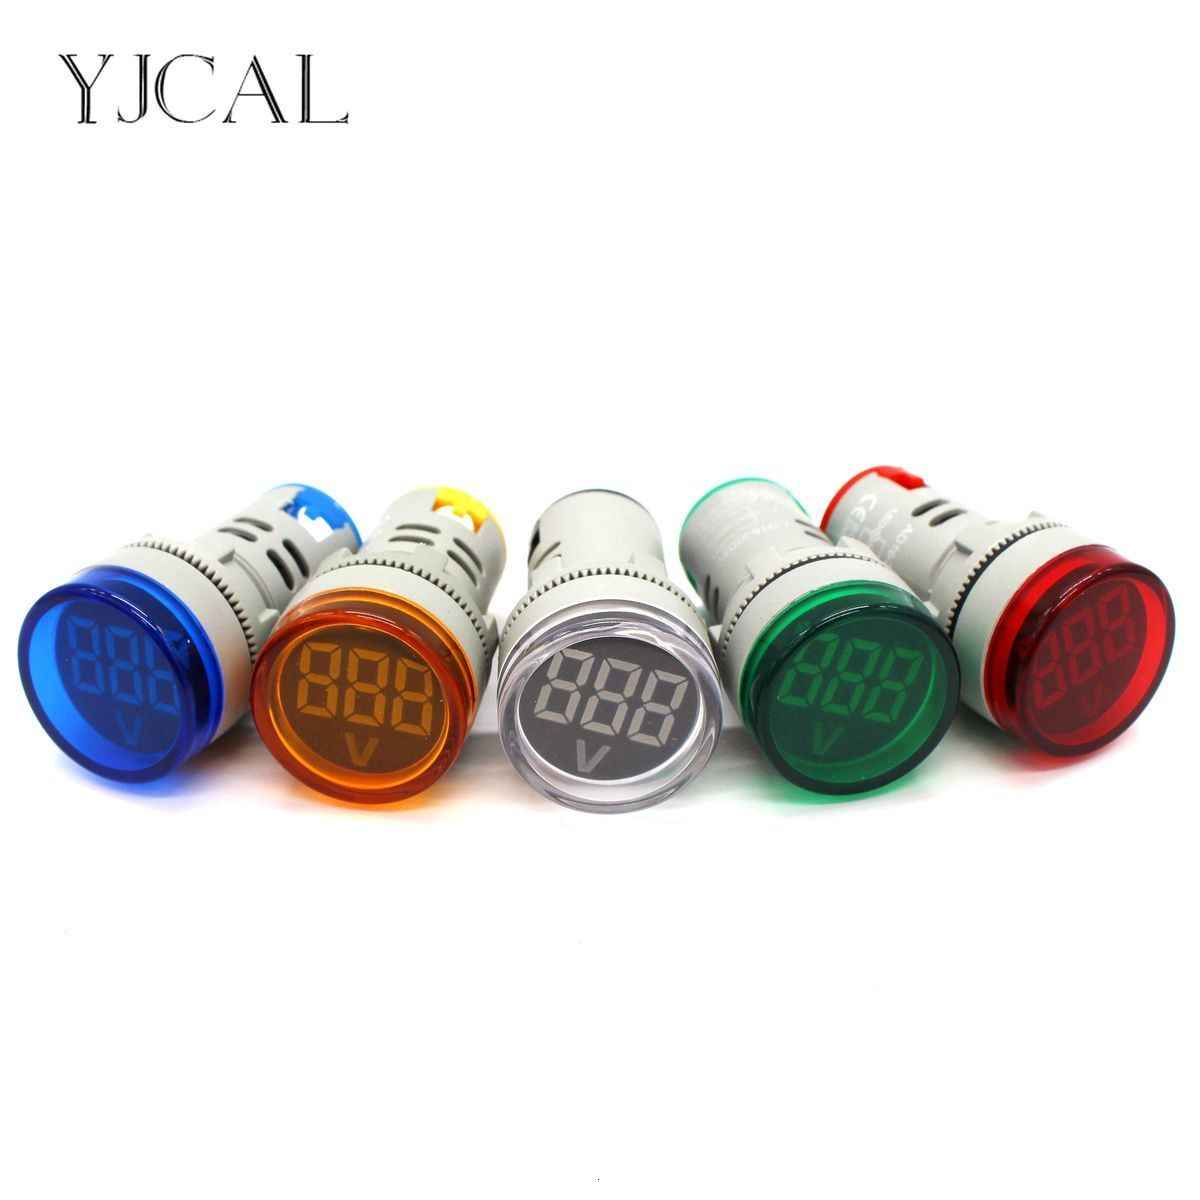 YJCAL AC 1V-500V LED Digital Display Voltmeter Combined Indicator Light 22MM Signal Lamp High Quality Boat Lights Navigation